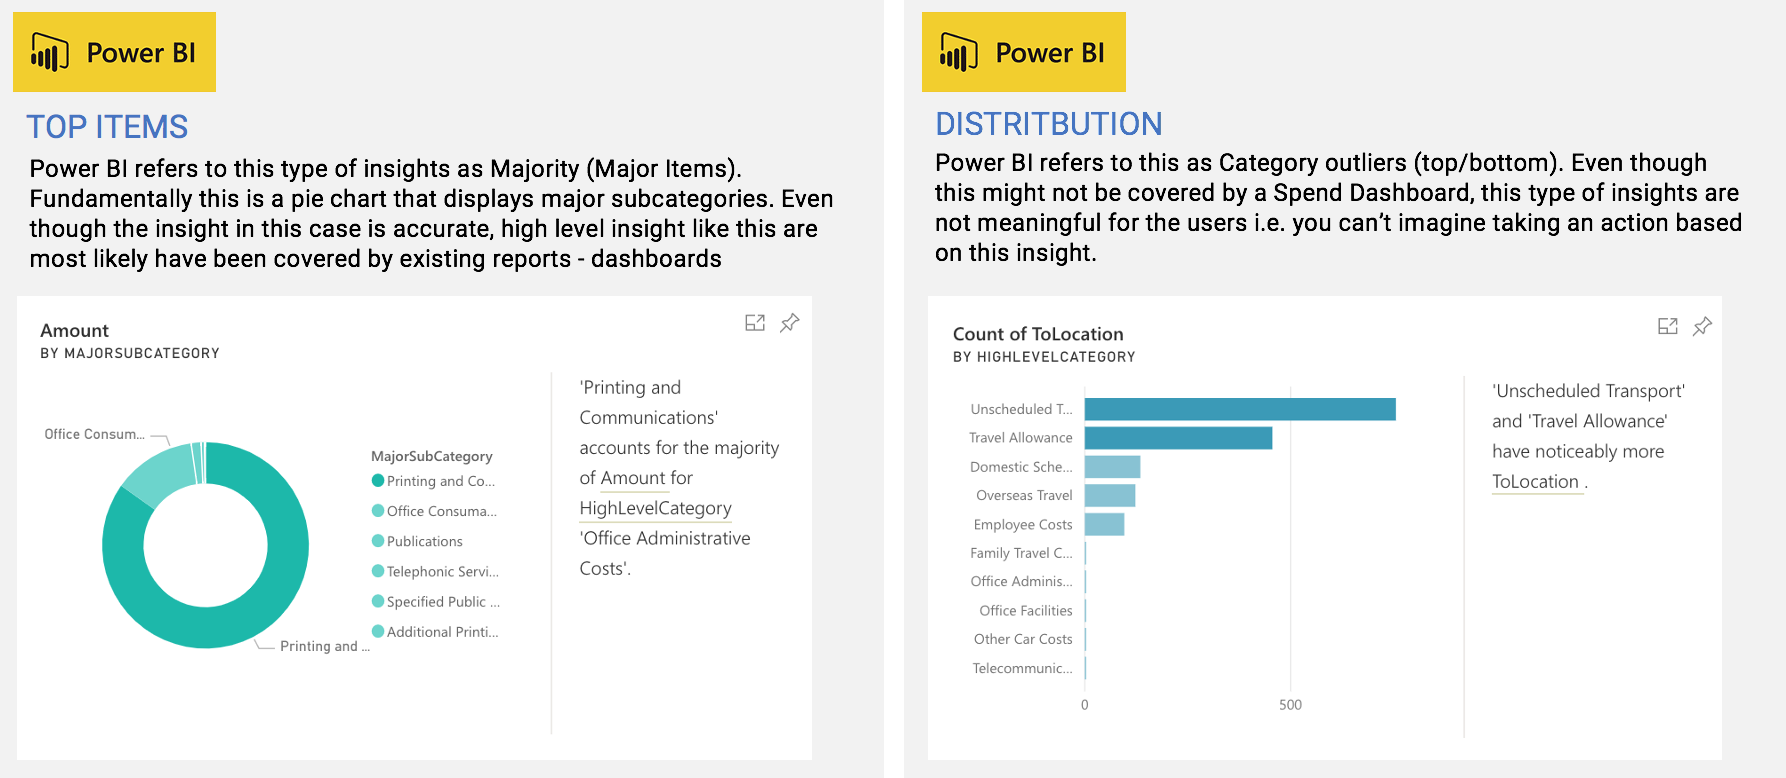 Power BI dashboard applies basic algorithms in attempt to uncover hidden insights